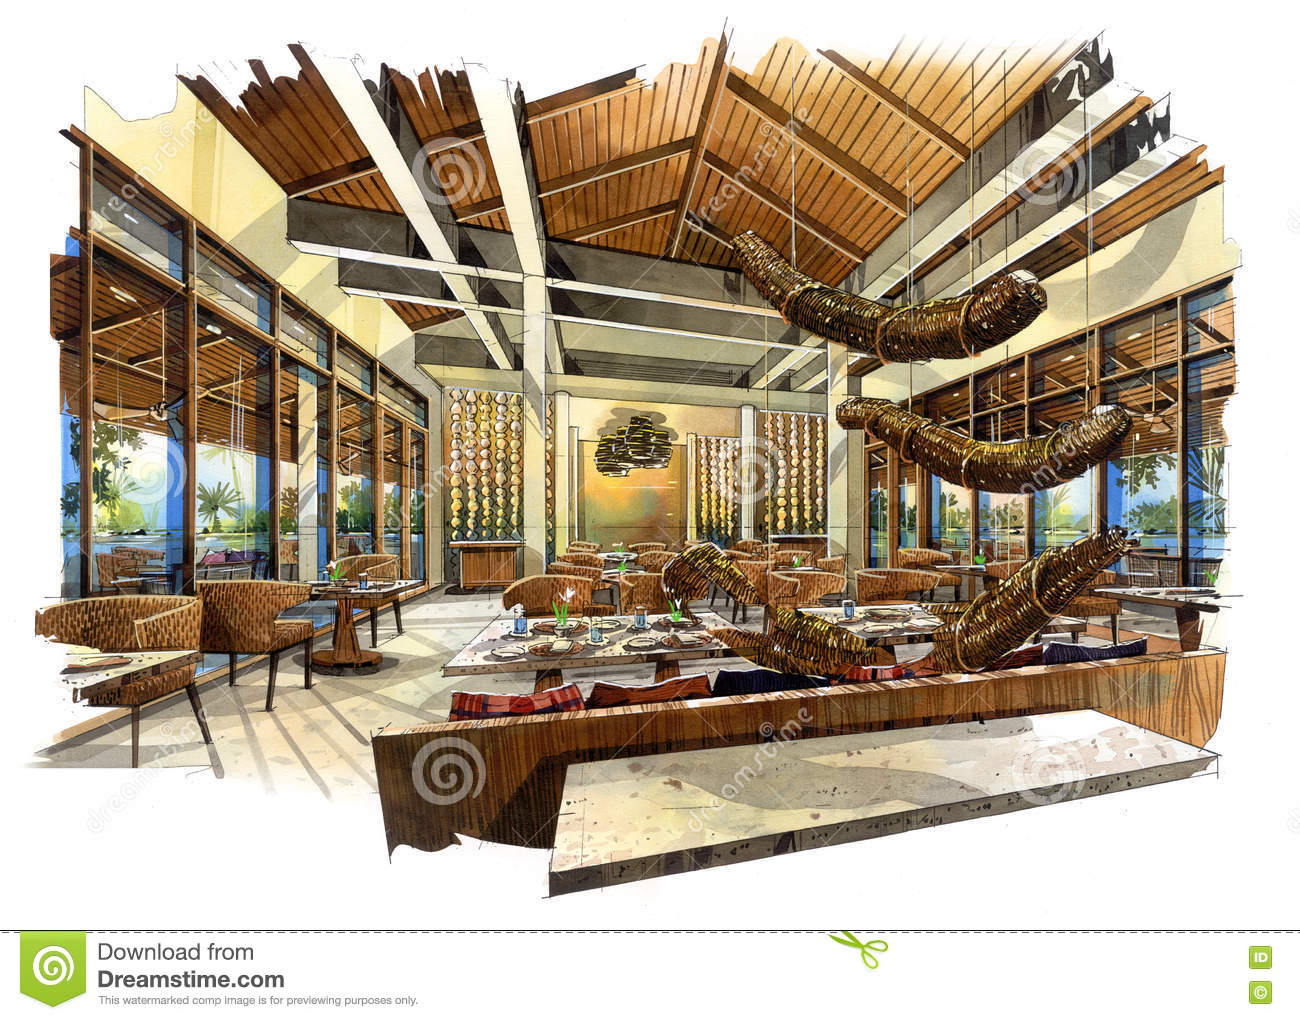 Sketch perspective interior restaurant into a watercolor